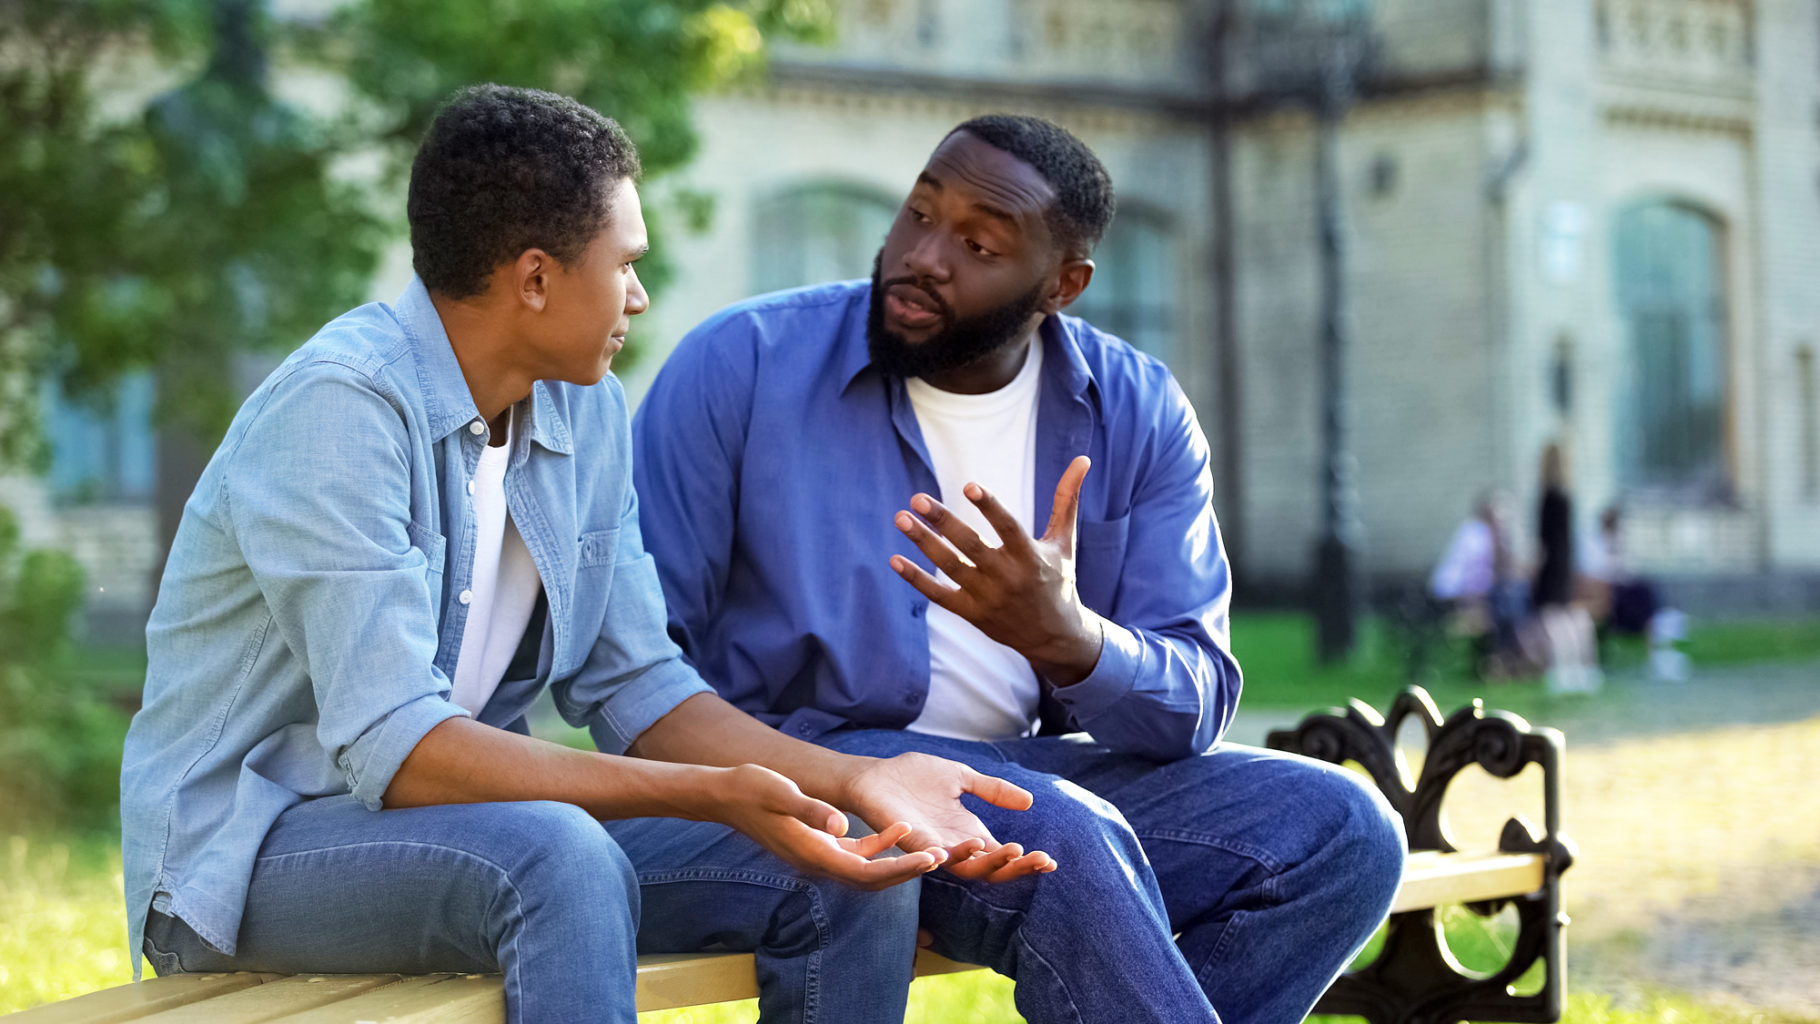 Father arguing teenage son sitting on campus bench, adolescent age difficulties.